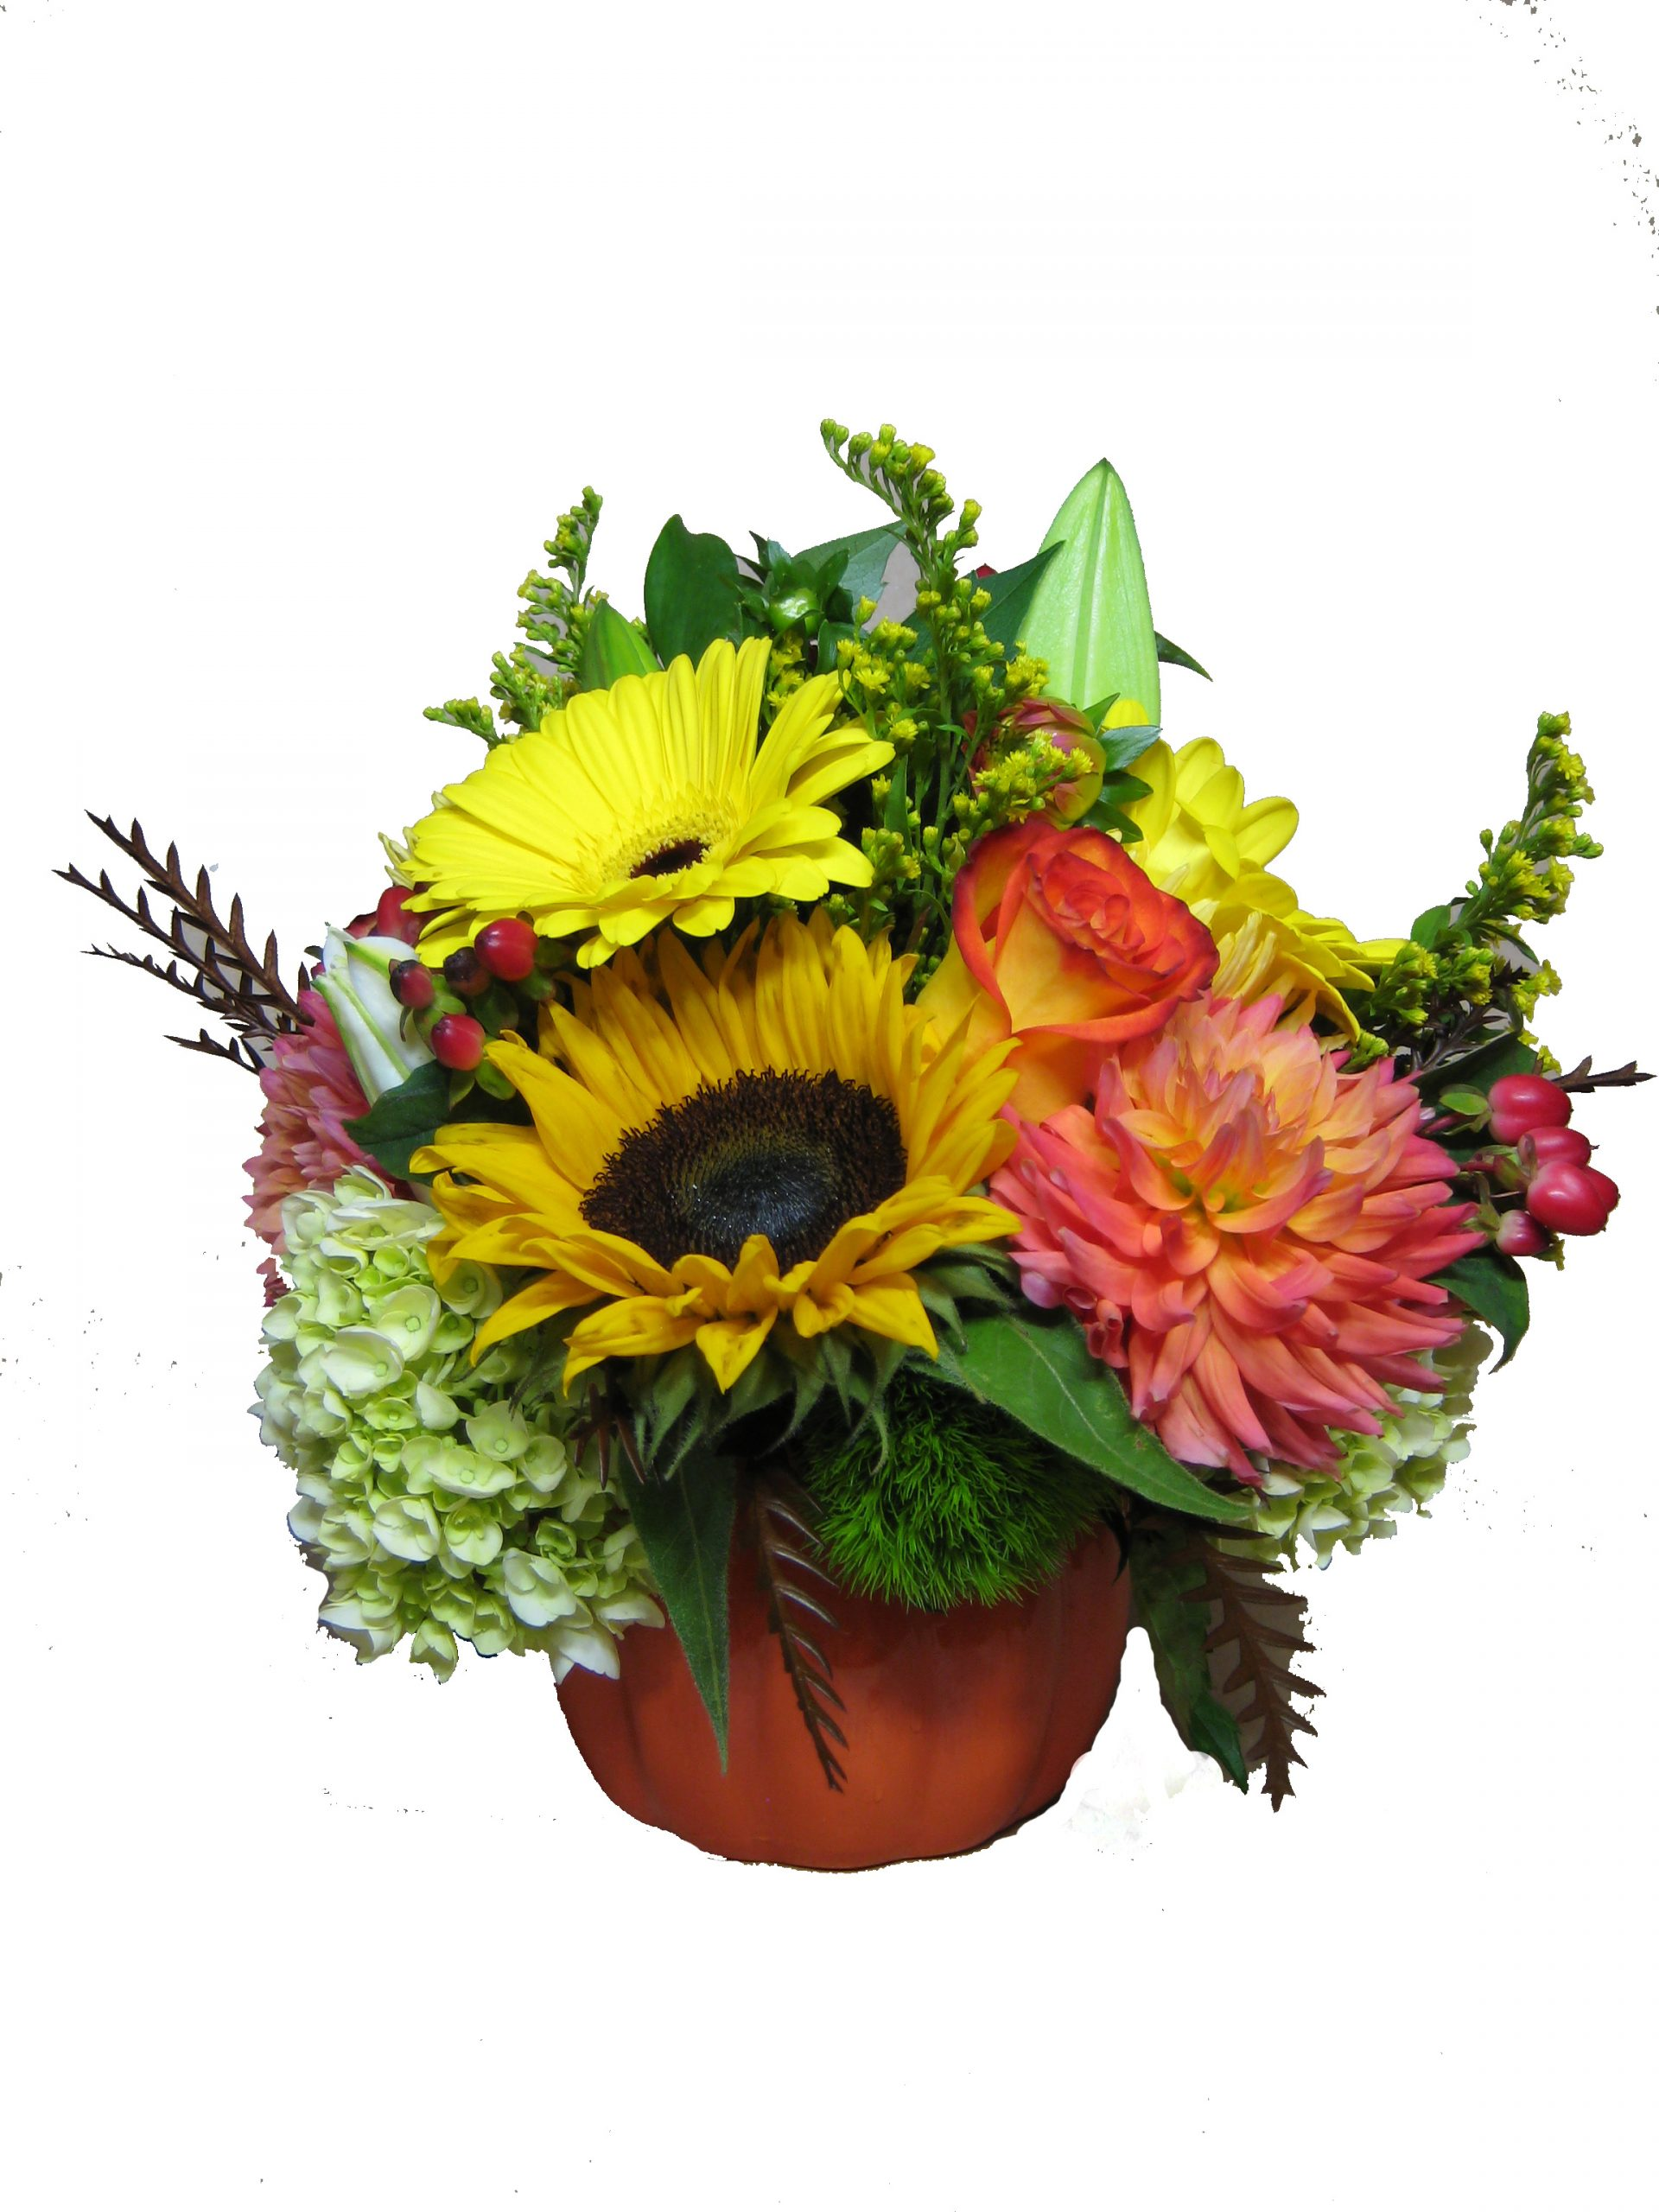 Harvest Floral arrangement.